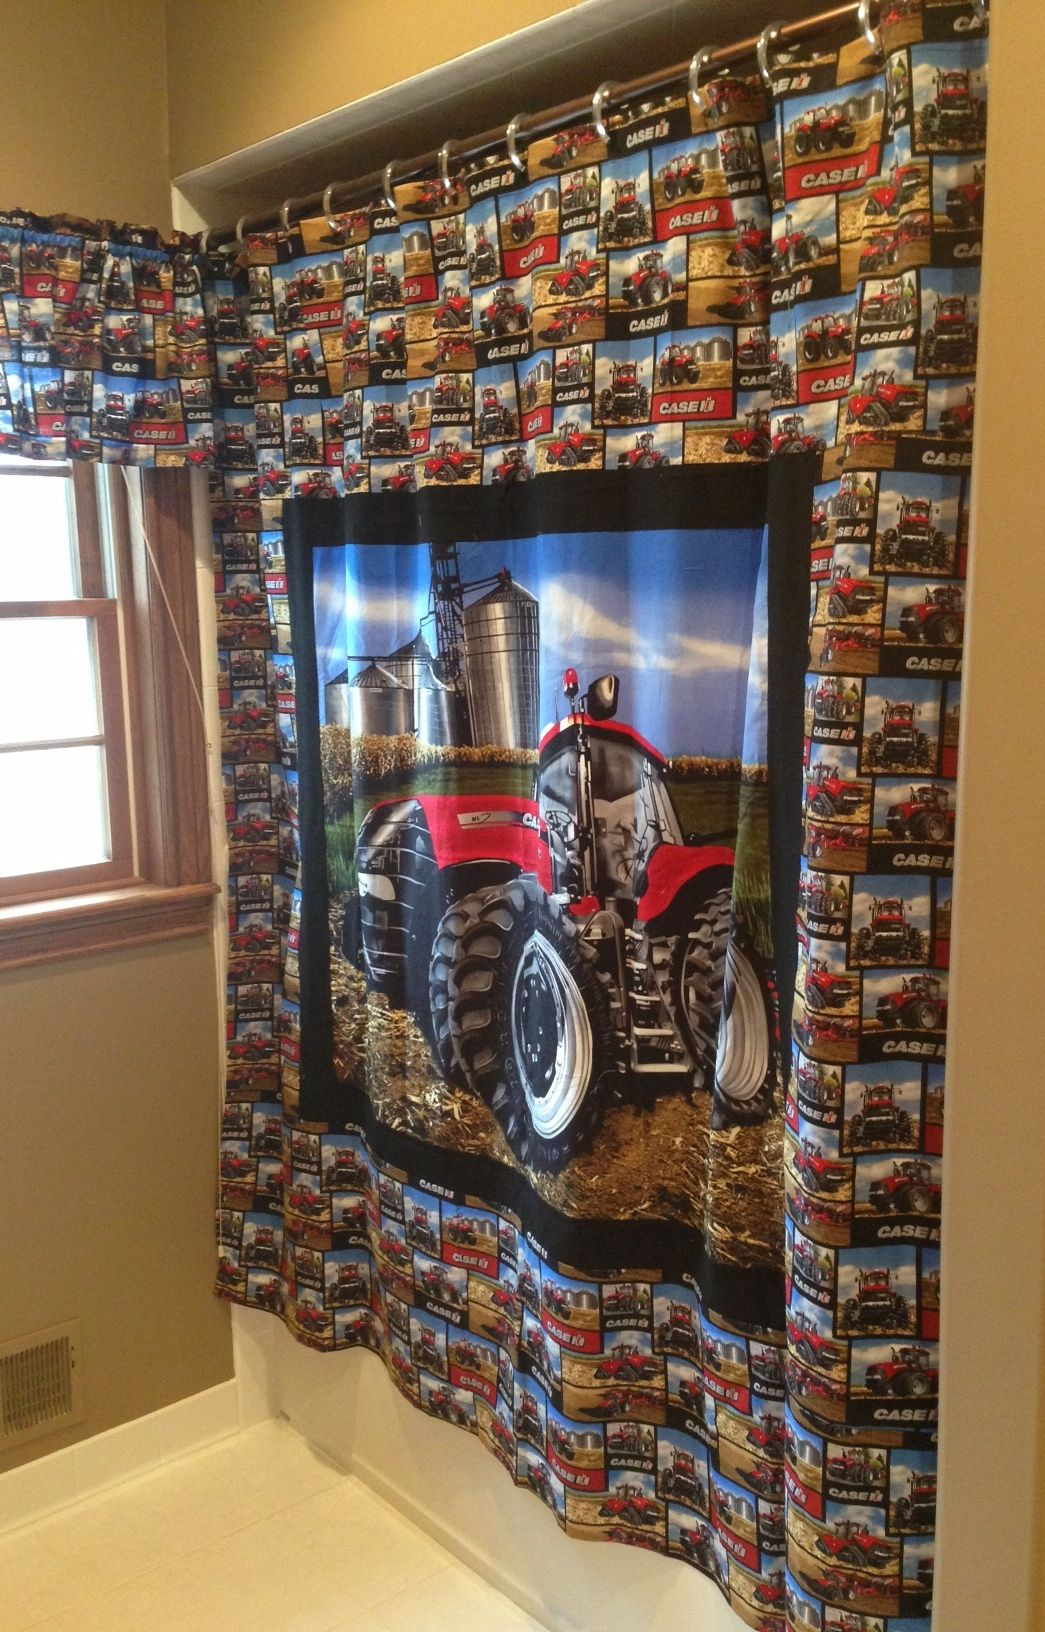 Case Ih Magnum Tractor Shower Curtain For The Bathroom